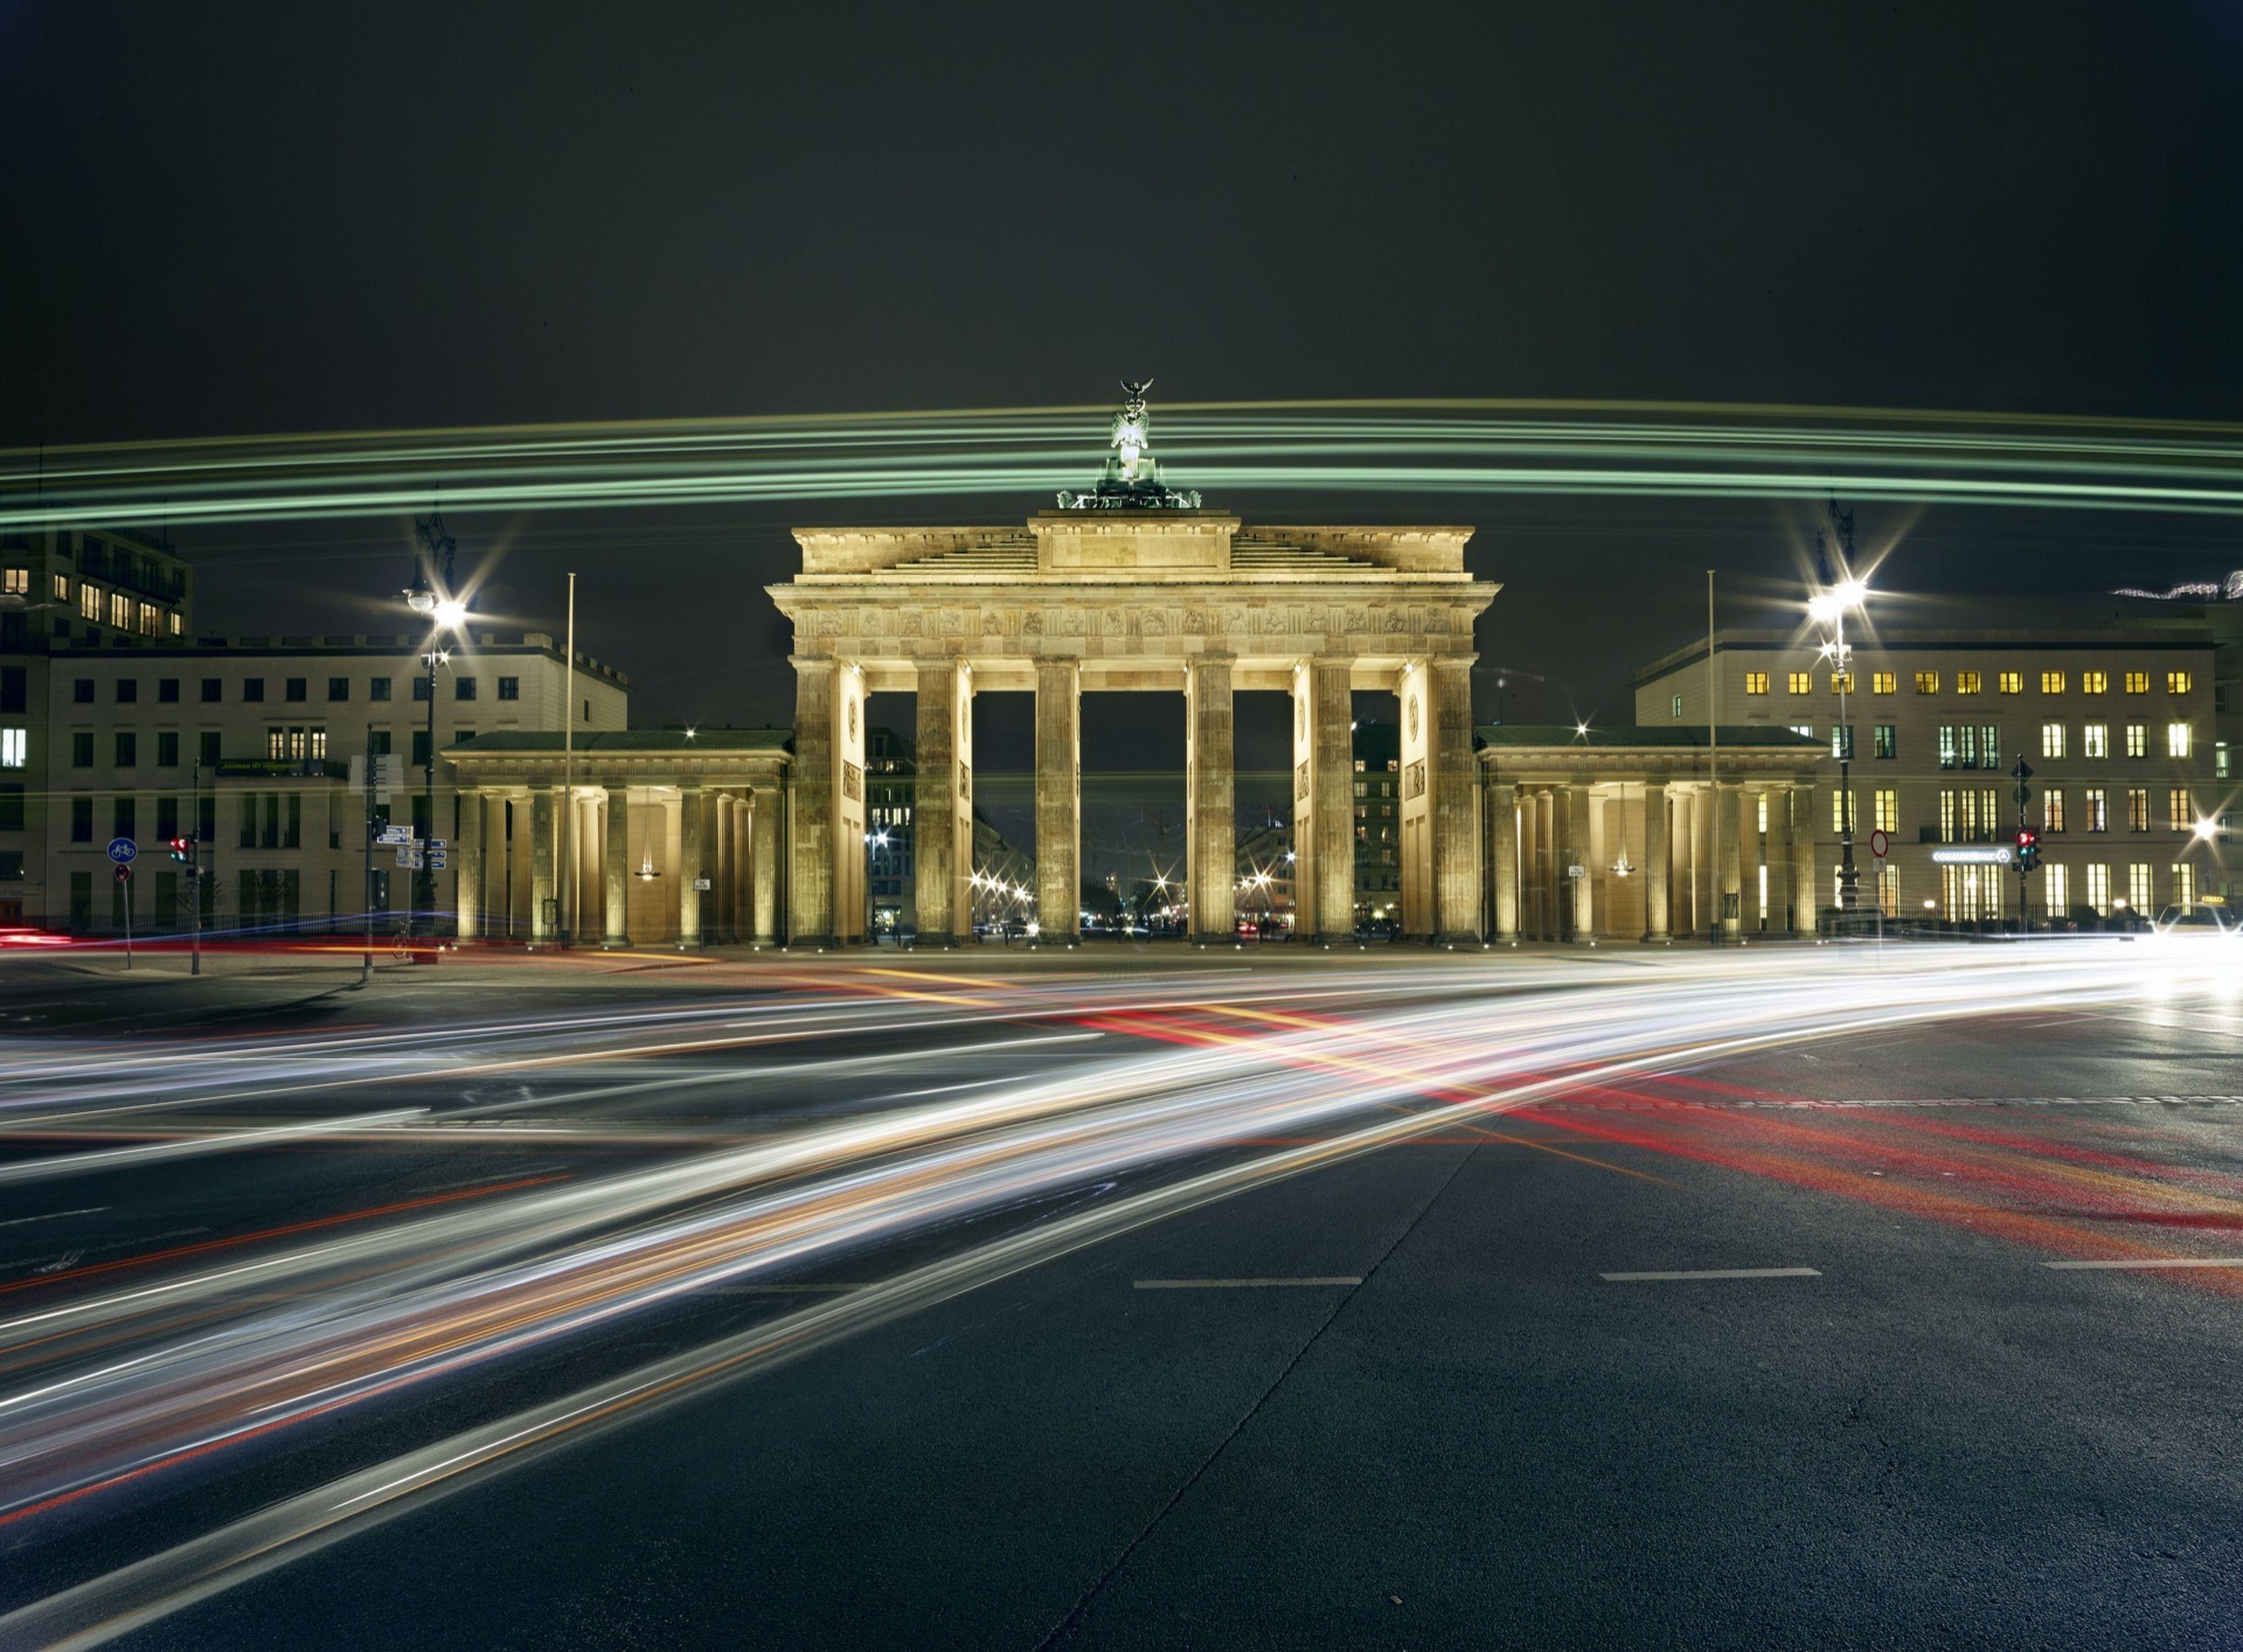 illuminated, night, architecture, built structure, building exterior, light trail, transportation, long exposure, road, street, city, motion, road marking, blurred motion, travel destinations, travel, speed, city life, the way forward, lighting equipment